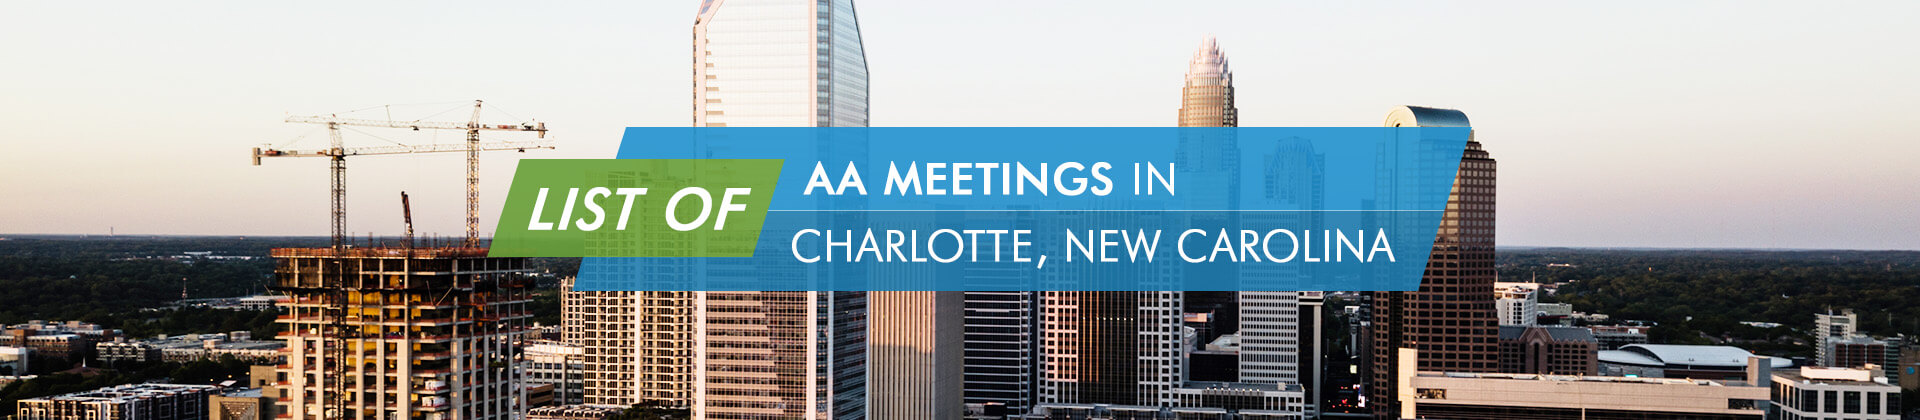 AA Meetings Charlotte New Carolina